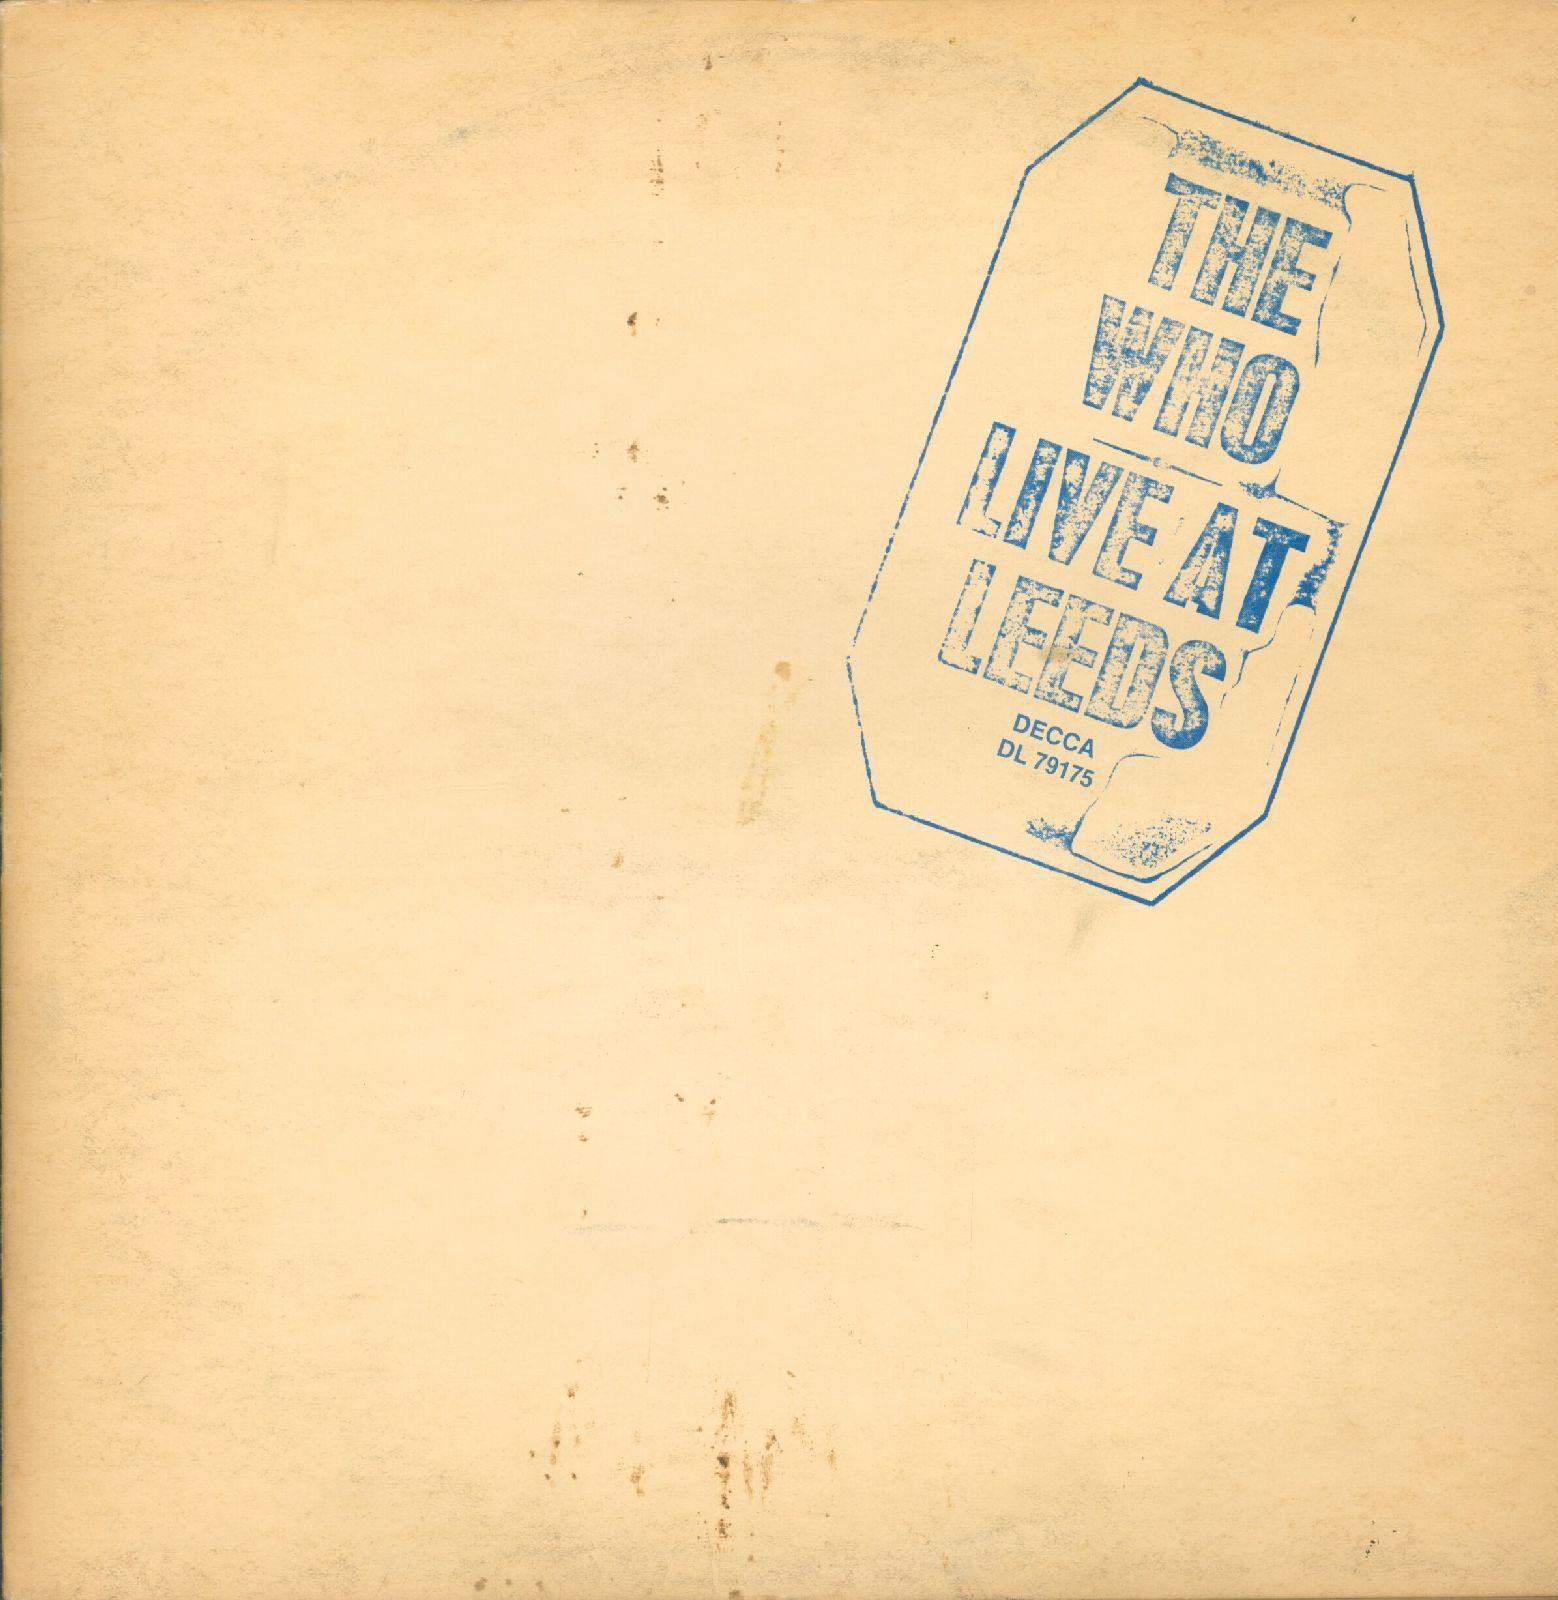 The Who, Live At LeedsThe cover looks like a bootleg, with the album title stamped on yellowed paper, but this is one of the best and best-sounding live recordings ever made.